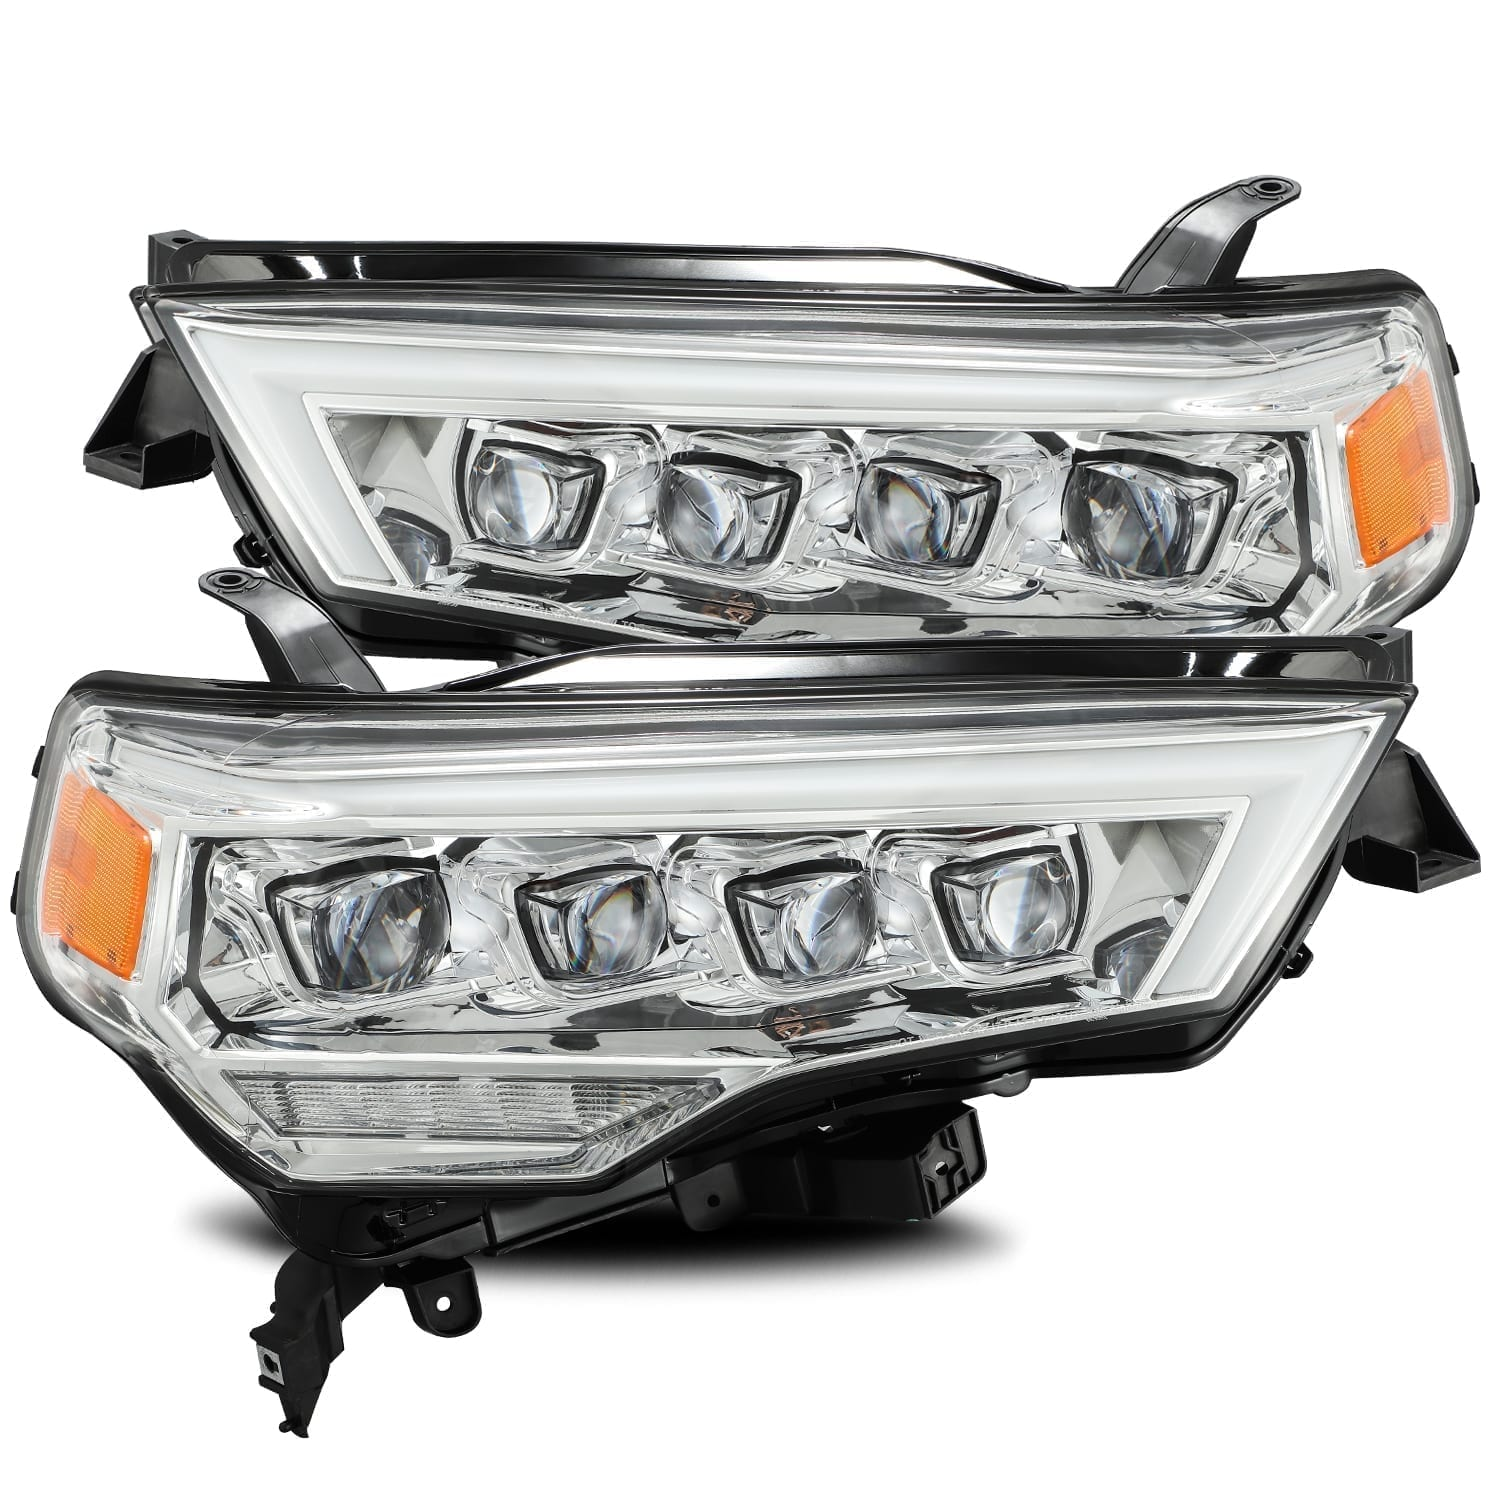 AlphaRex - NOVA-Series LED Projector Headlights Chrome - Toyota 4Runner 5th Gen 2014-2021 - 4x4 Runners